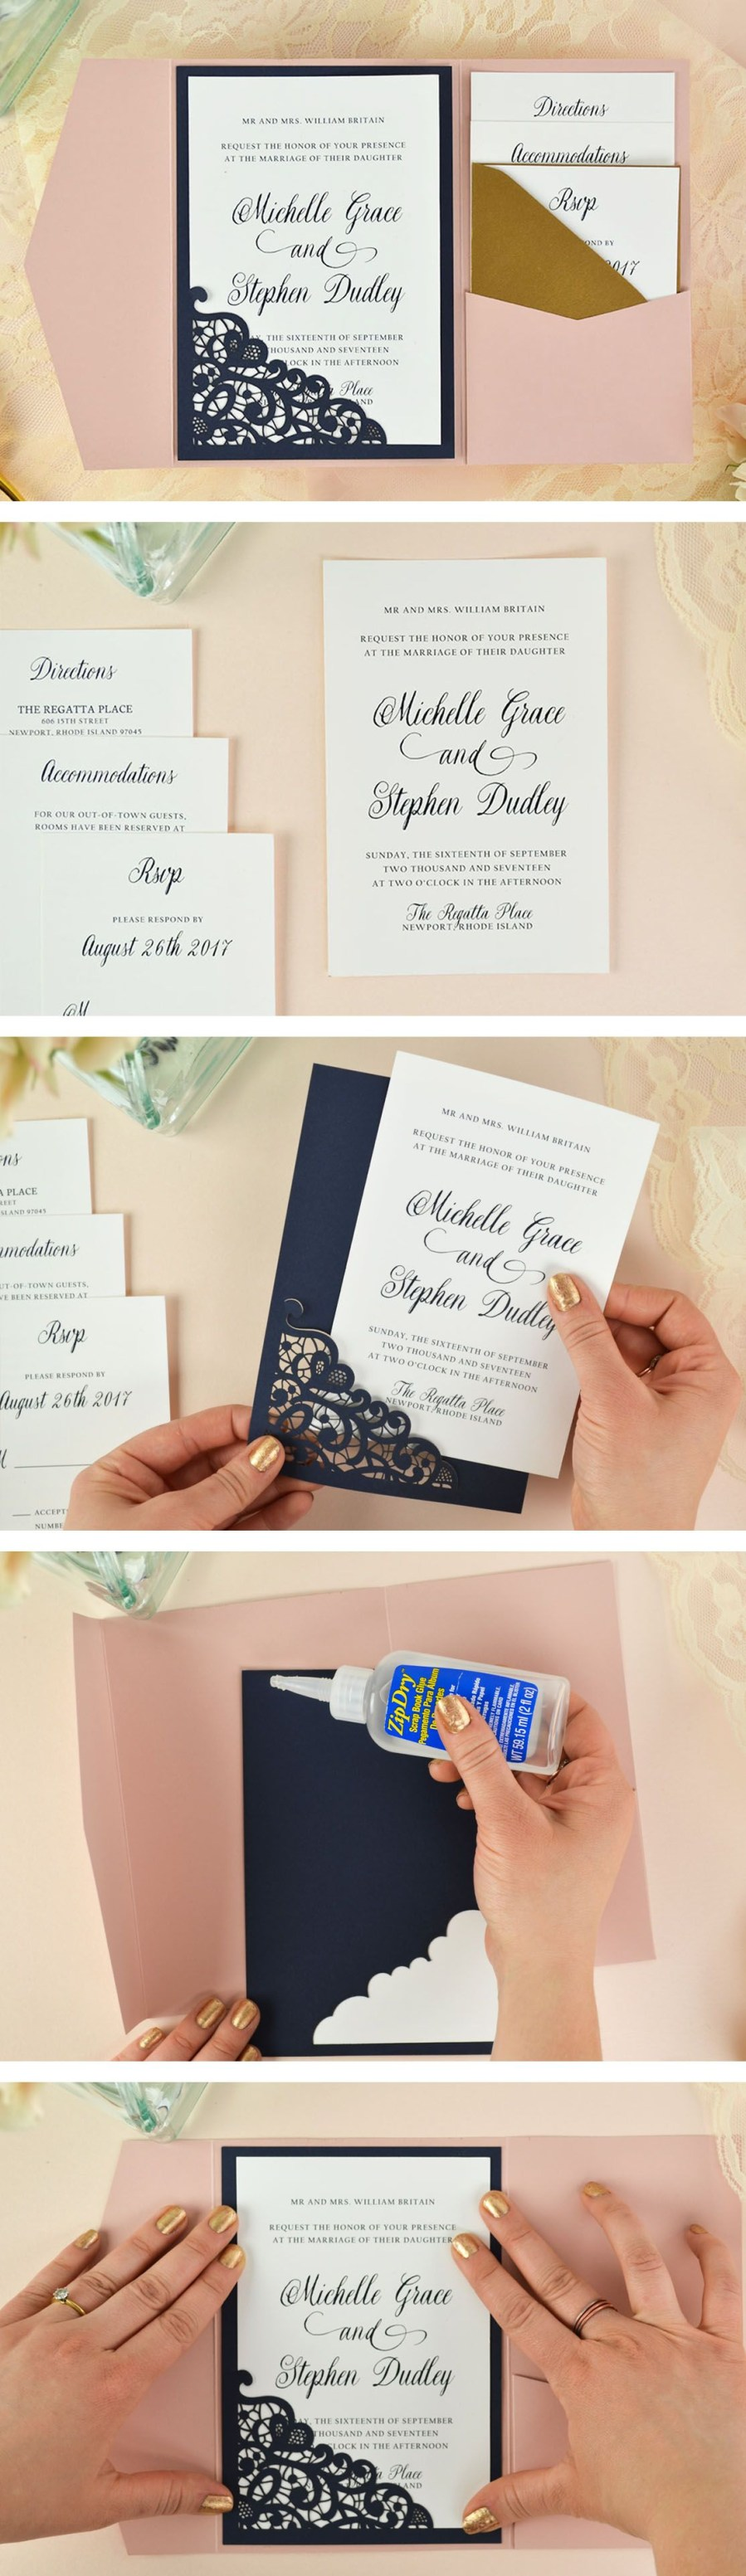 Laser Cut Wedding Invitations Diy How To Diy Laser Wedding Invitations With Slide In Cards Wedding